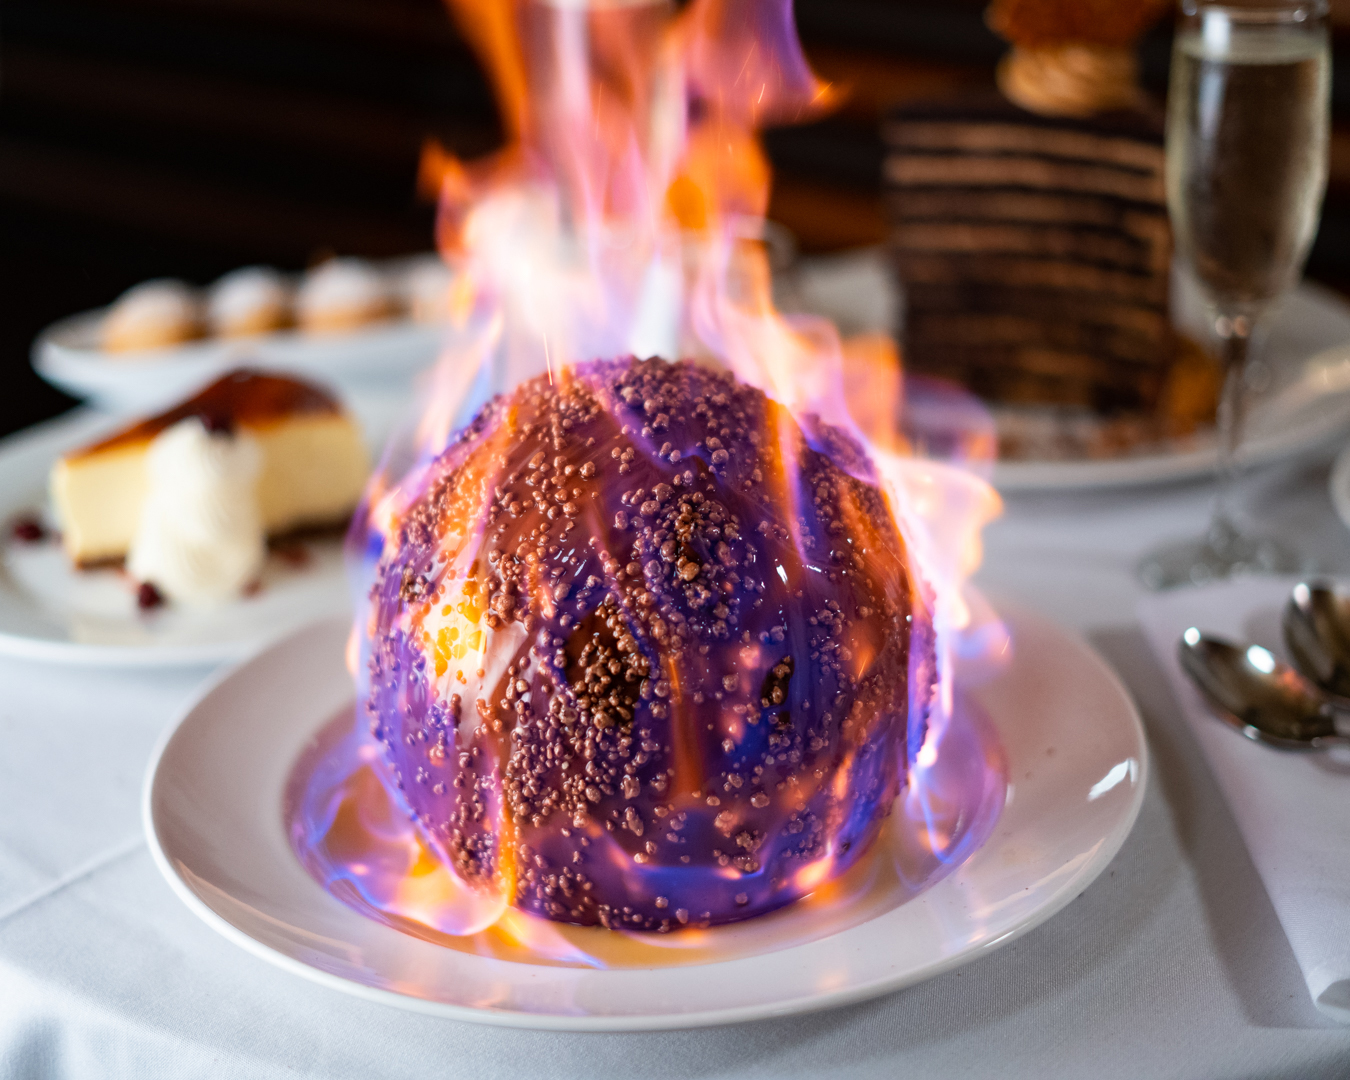 A chocolate sphere set on fire